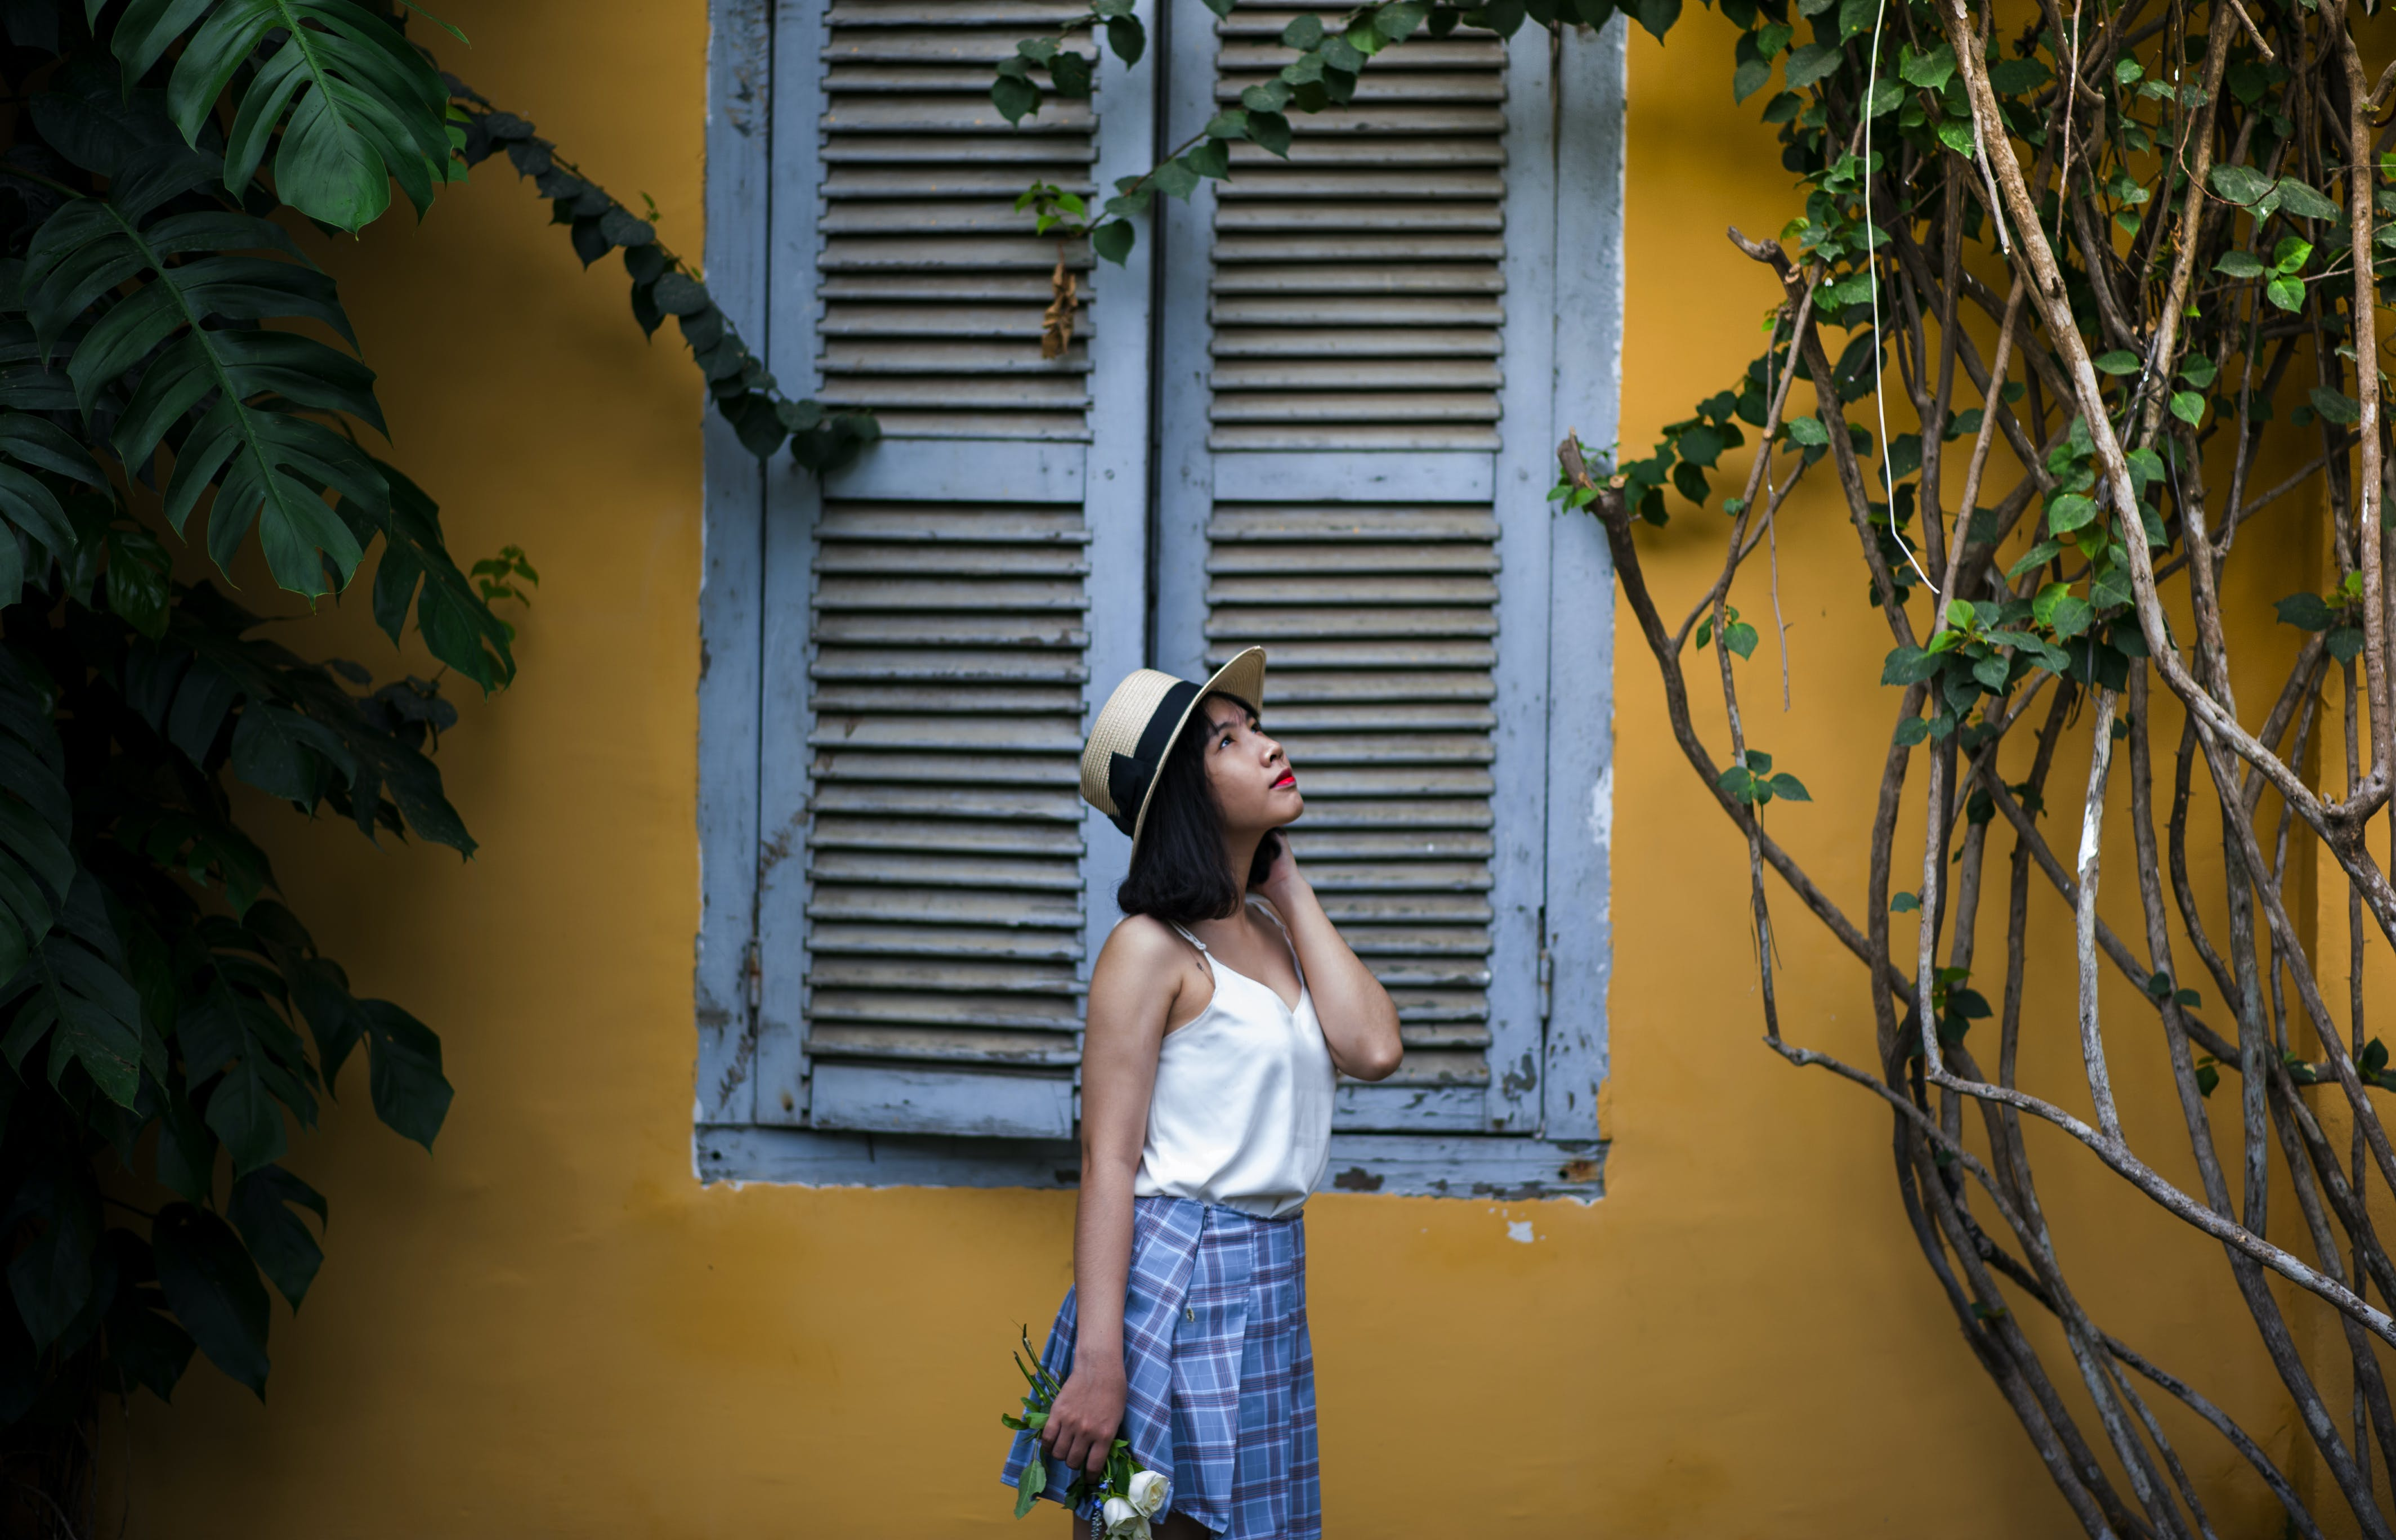 Woman Standing Near Louvered Window Holding White Roses